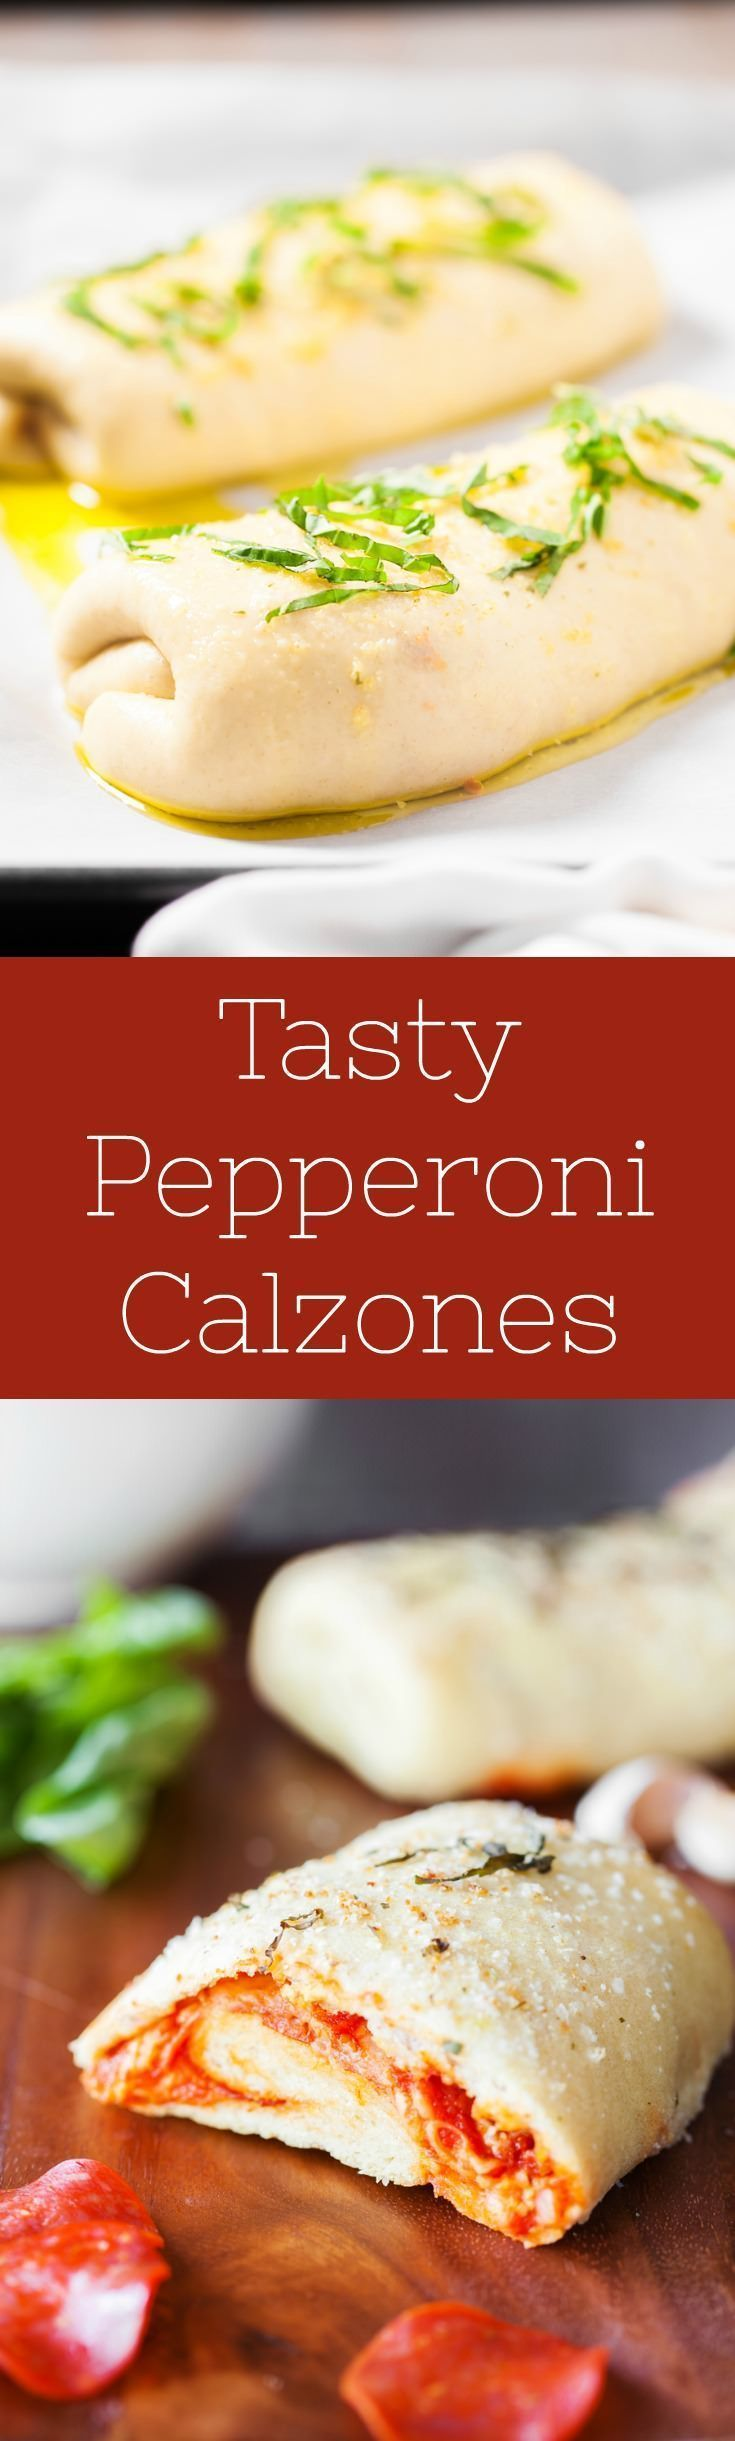 It can be expensive to fill a calzone craving on a regular basis. Get inspired by this calzone recipe with no yeast dough - it's so simple and yummy!